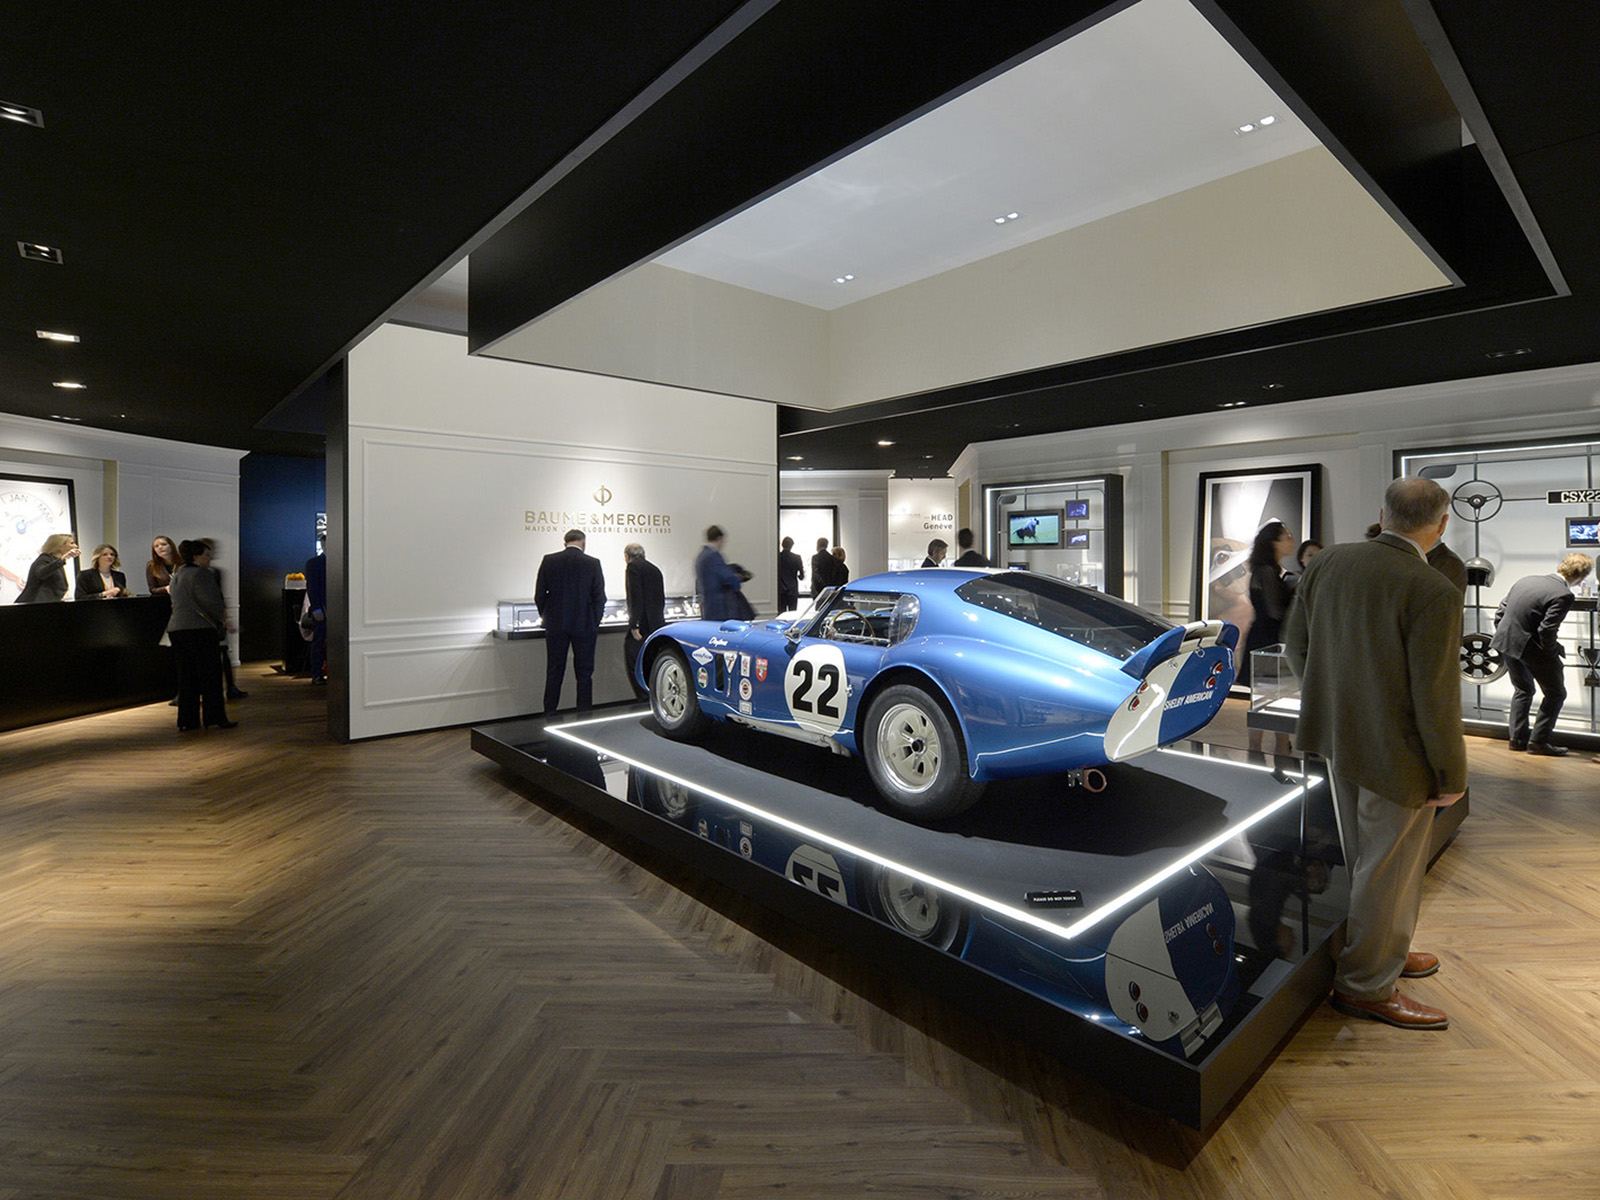 Baume & Mercier - SIHH 2017 - Shelby Cobra Daytona Coupe